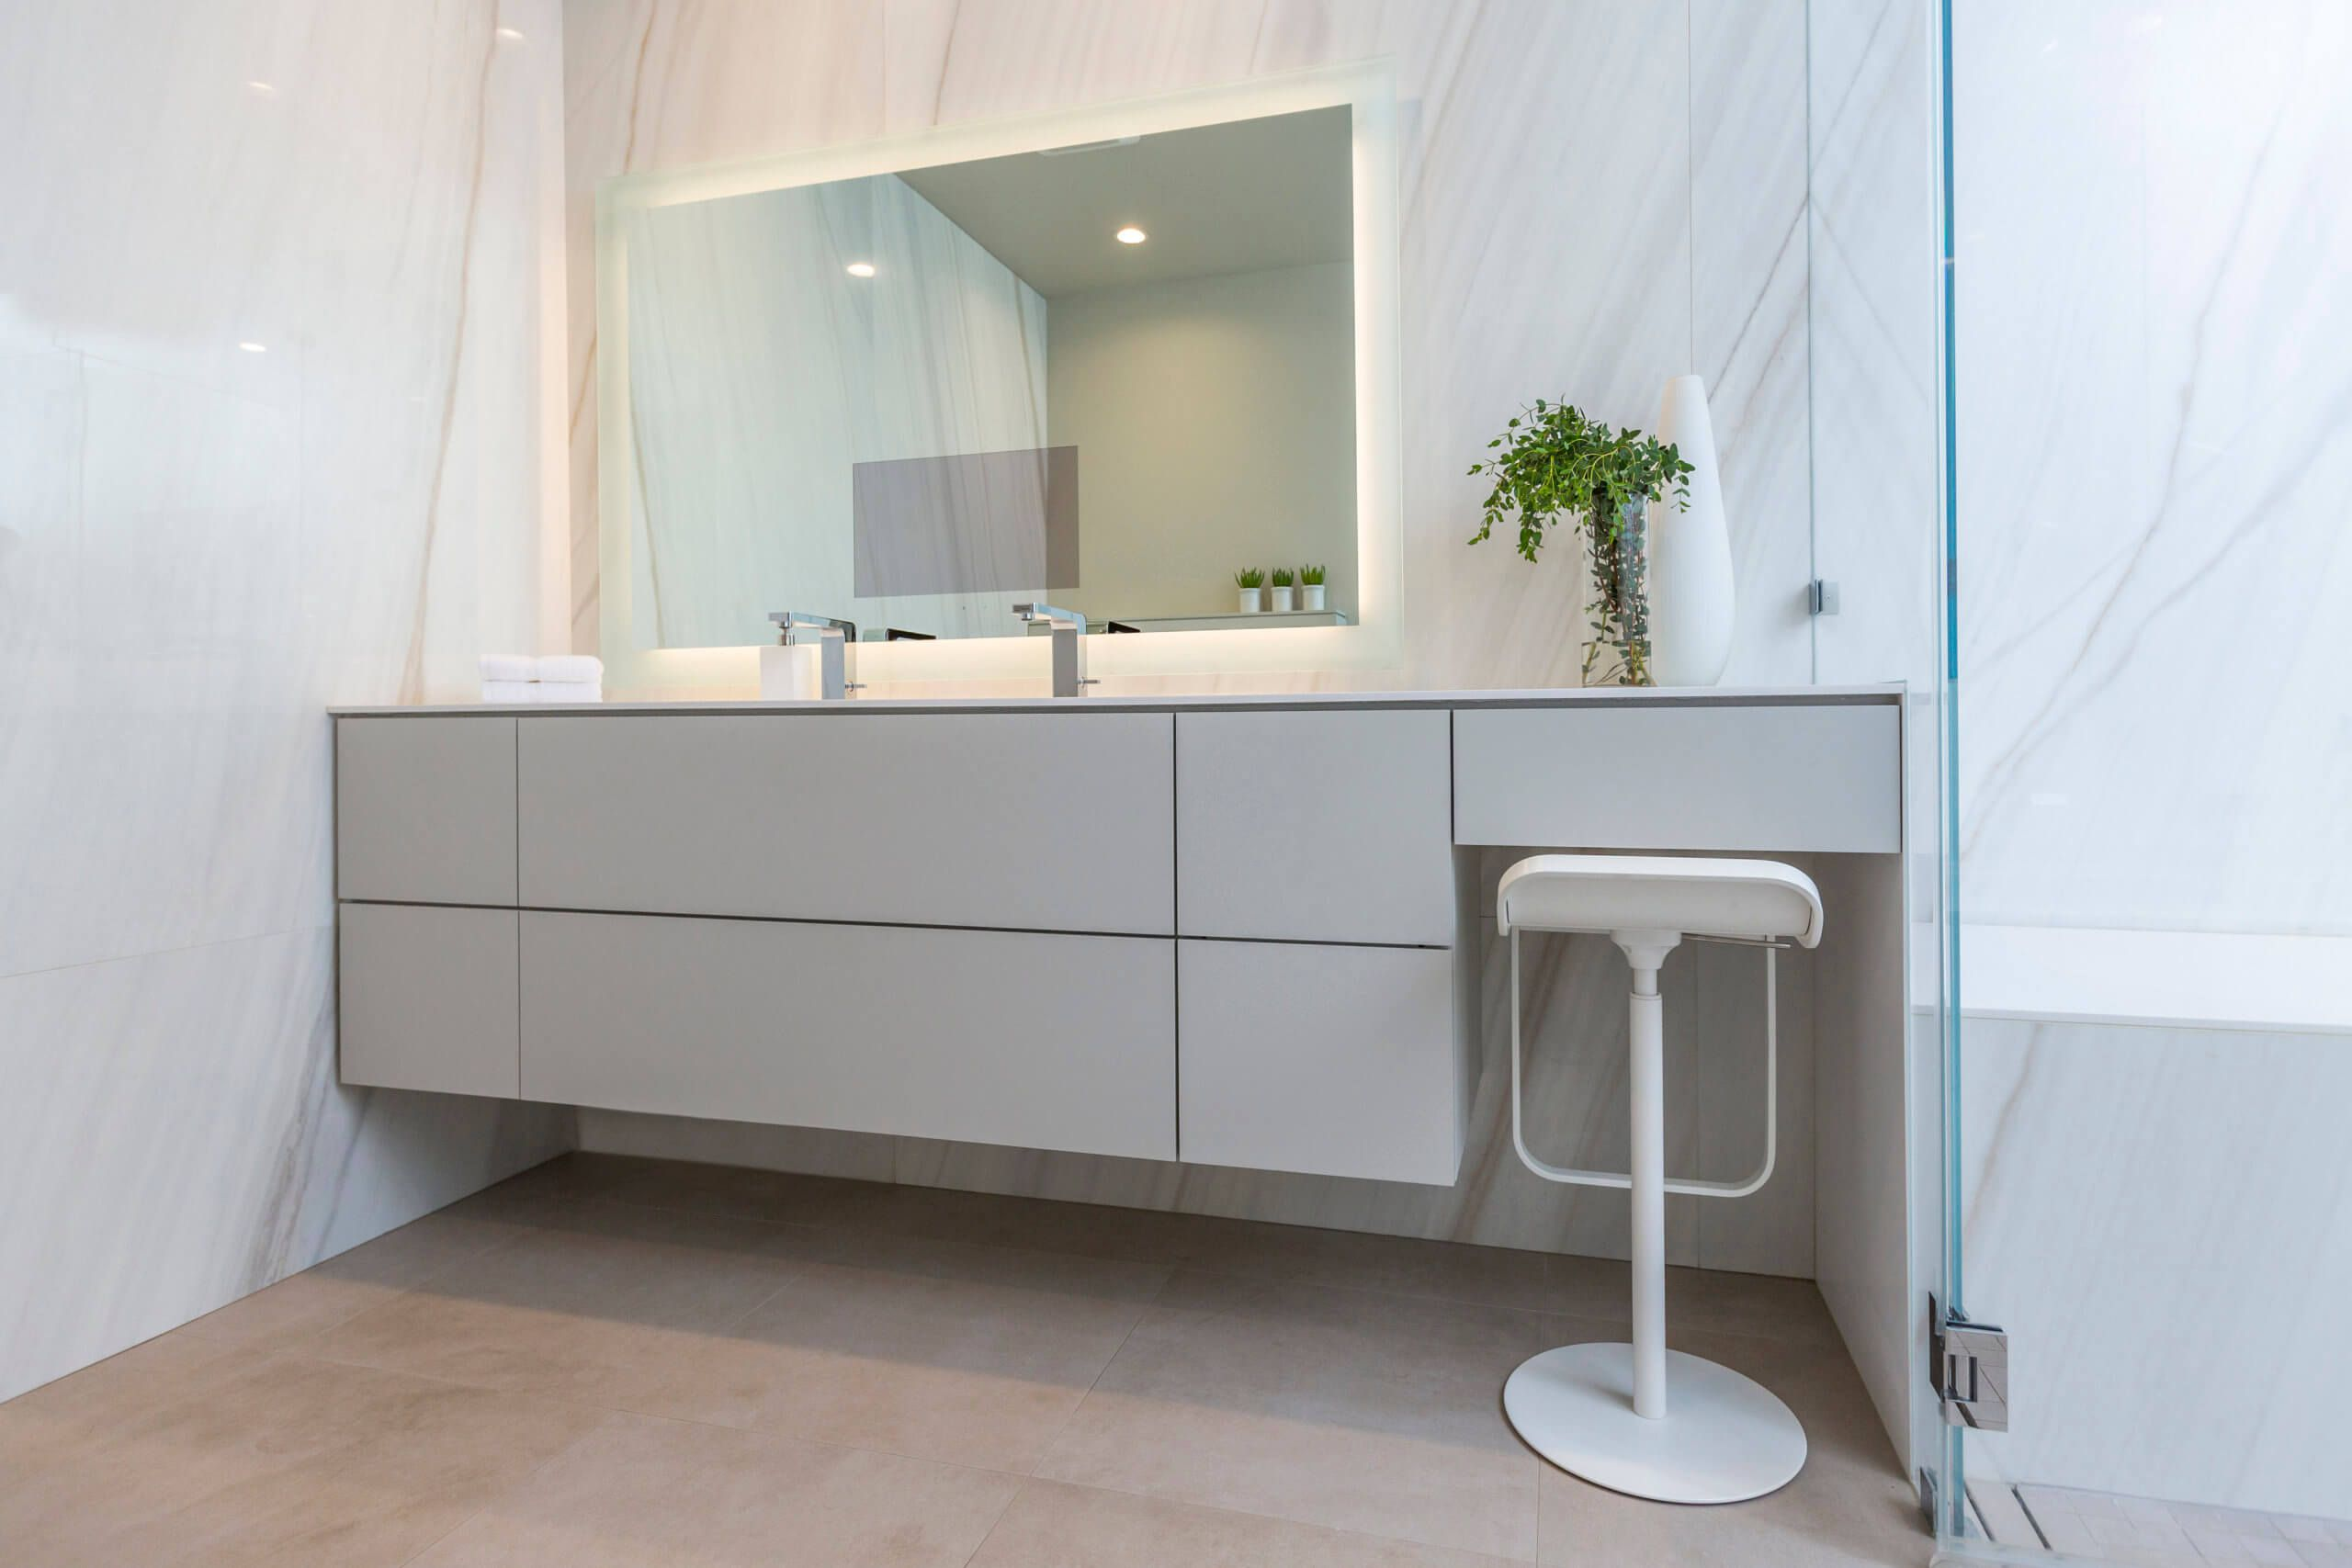 White natural stone modern bathroom with custom cabinetry and touch screen mirror. Bathroom Designed by premiere Cincinnati interior Designer, RM Interiors.